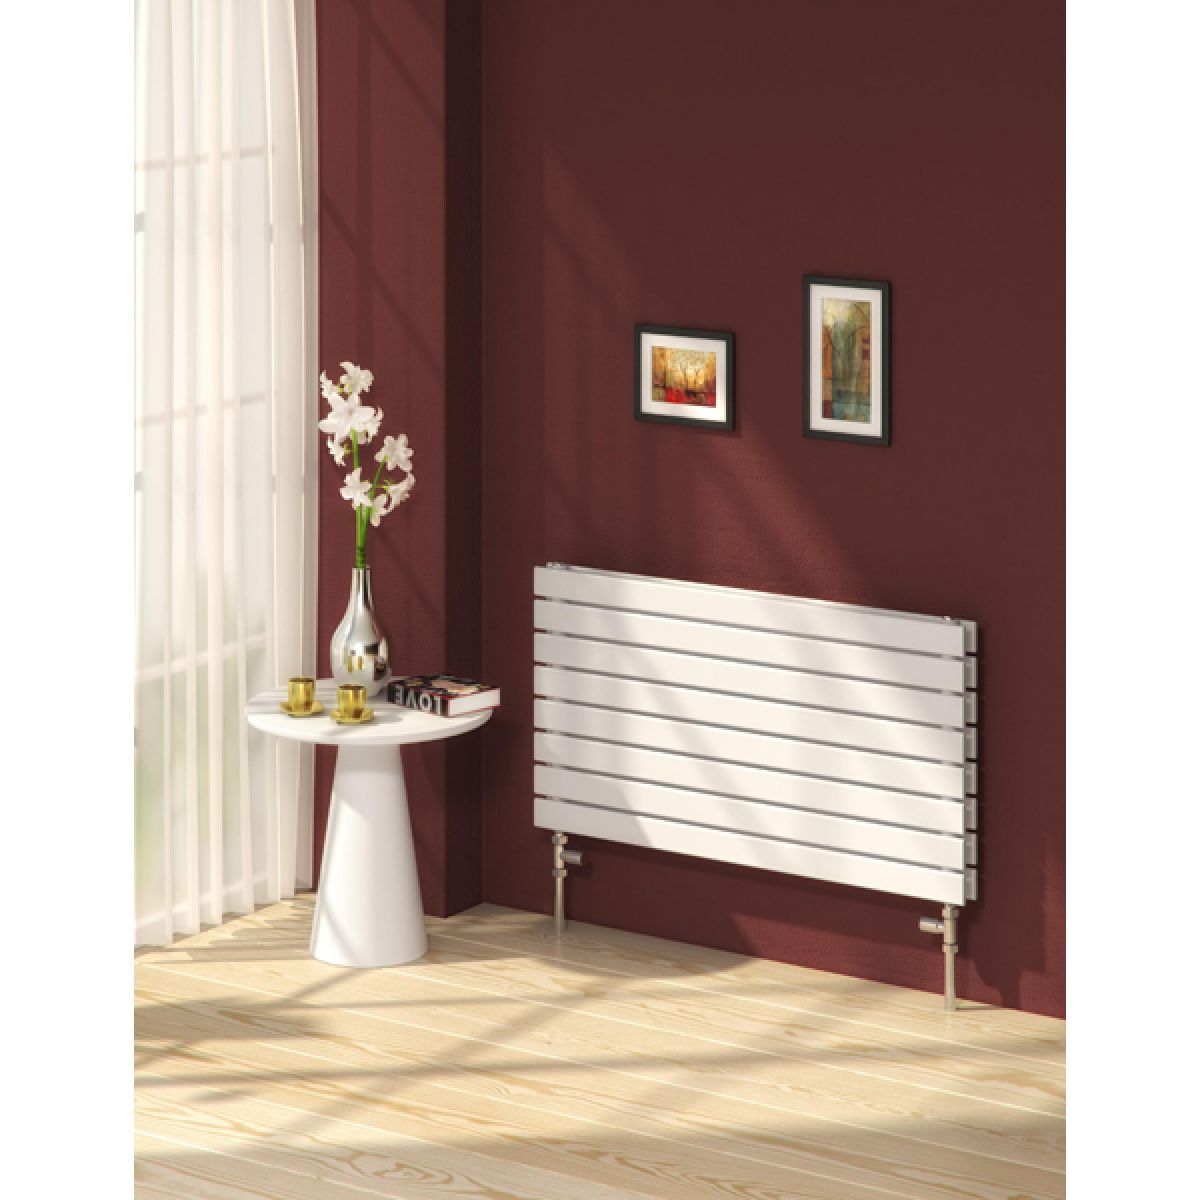 Reina Rione Double Electric Horizontal Radiator 550 x 1200mm in White